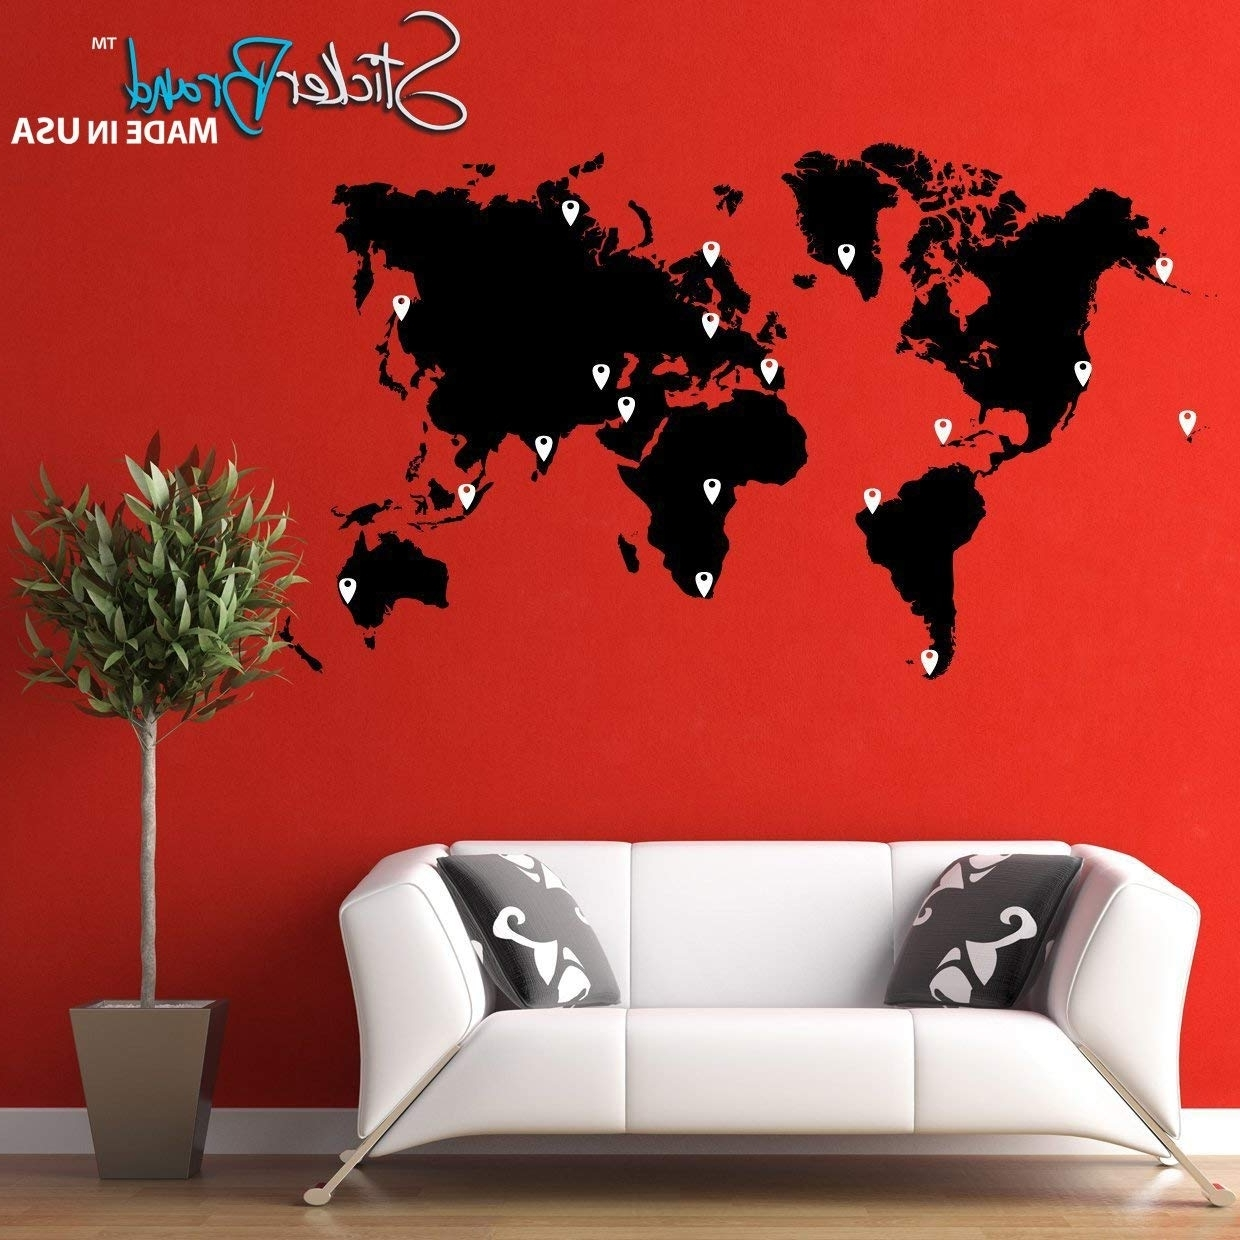 Trendy Vinyl Wall Art World Map With Regard To Amazon: Stickerbrand Vinyl Wall Art World Map Of Earth With Pin (View 8 of 15)